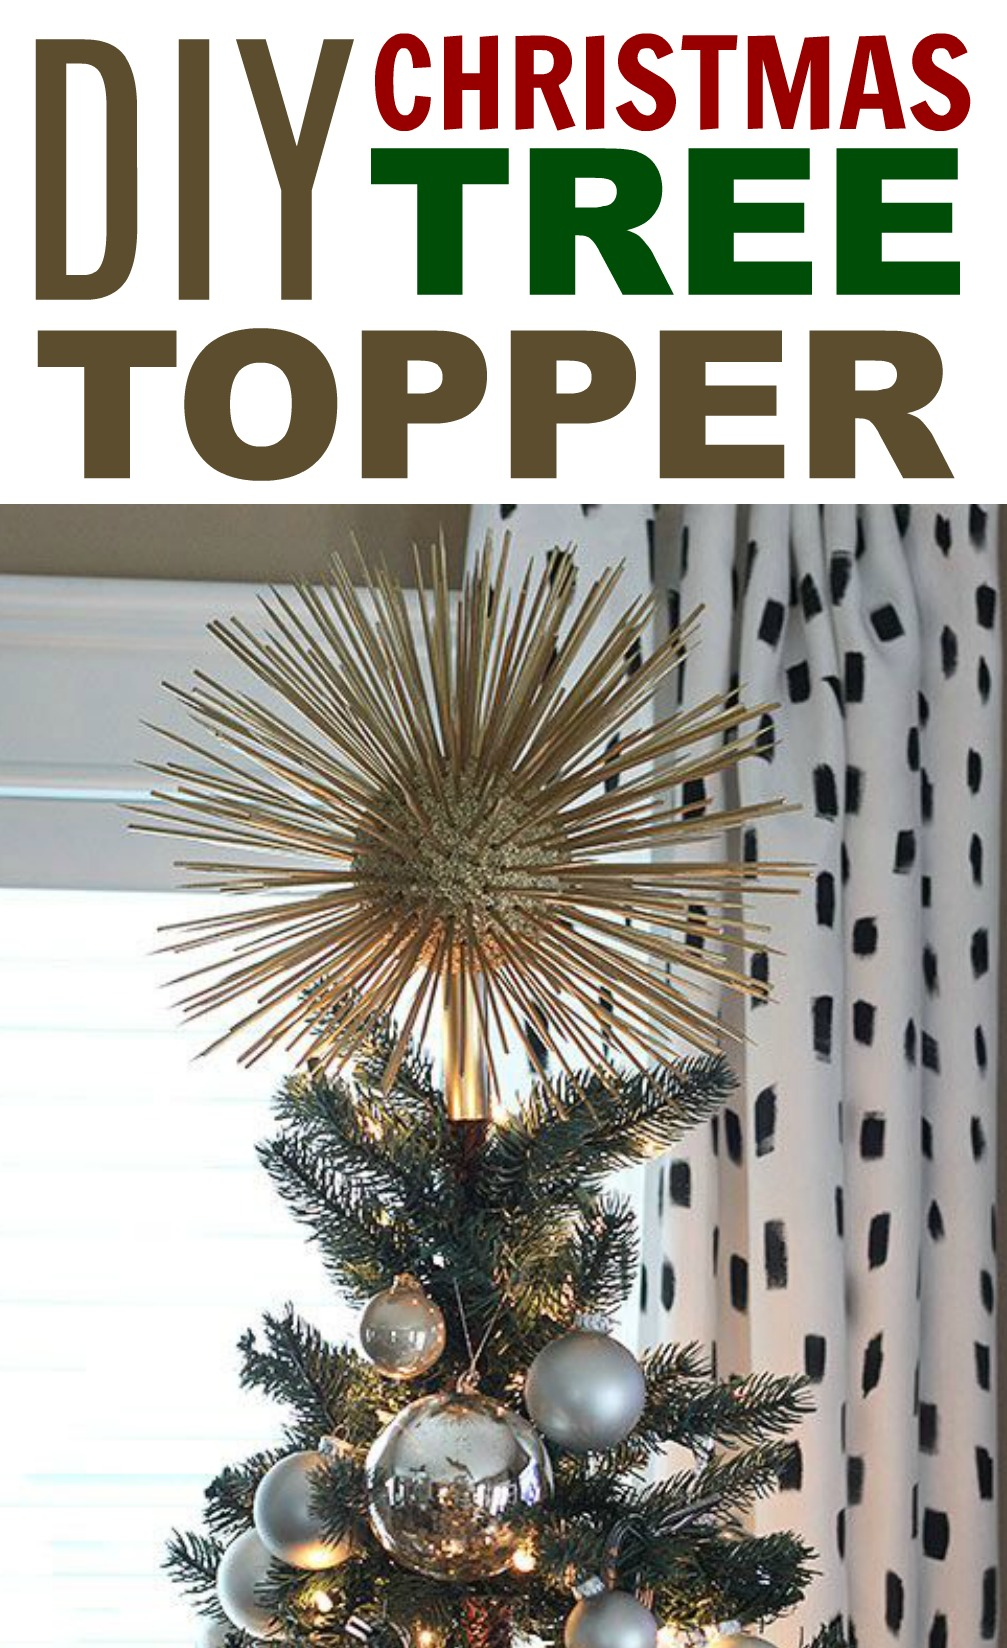 1231 diy christmas tree topper - How To Make A Christmas Tree Topper